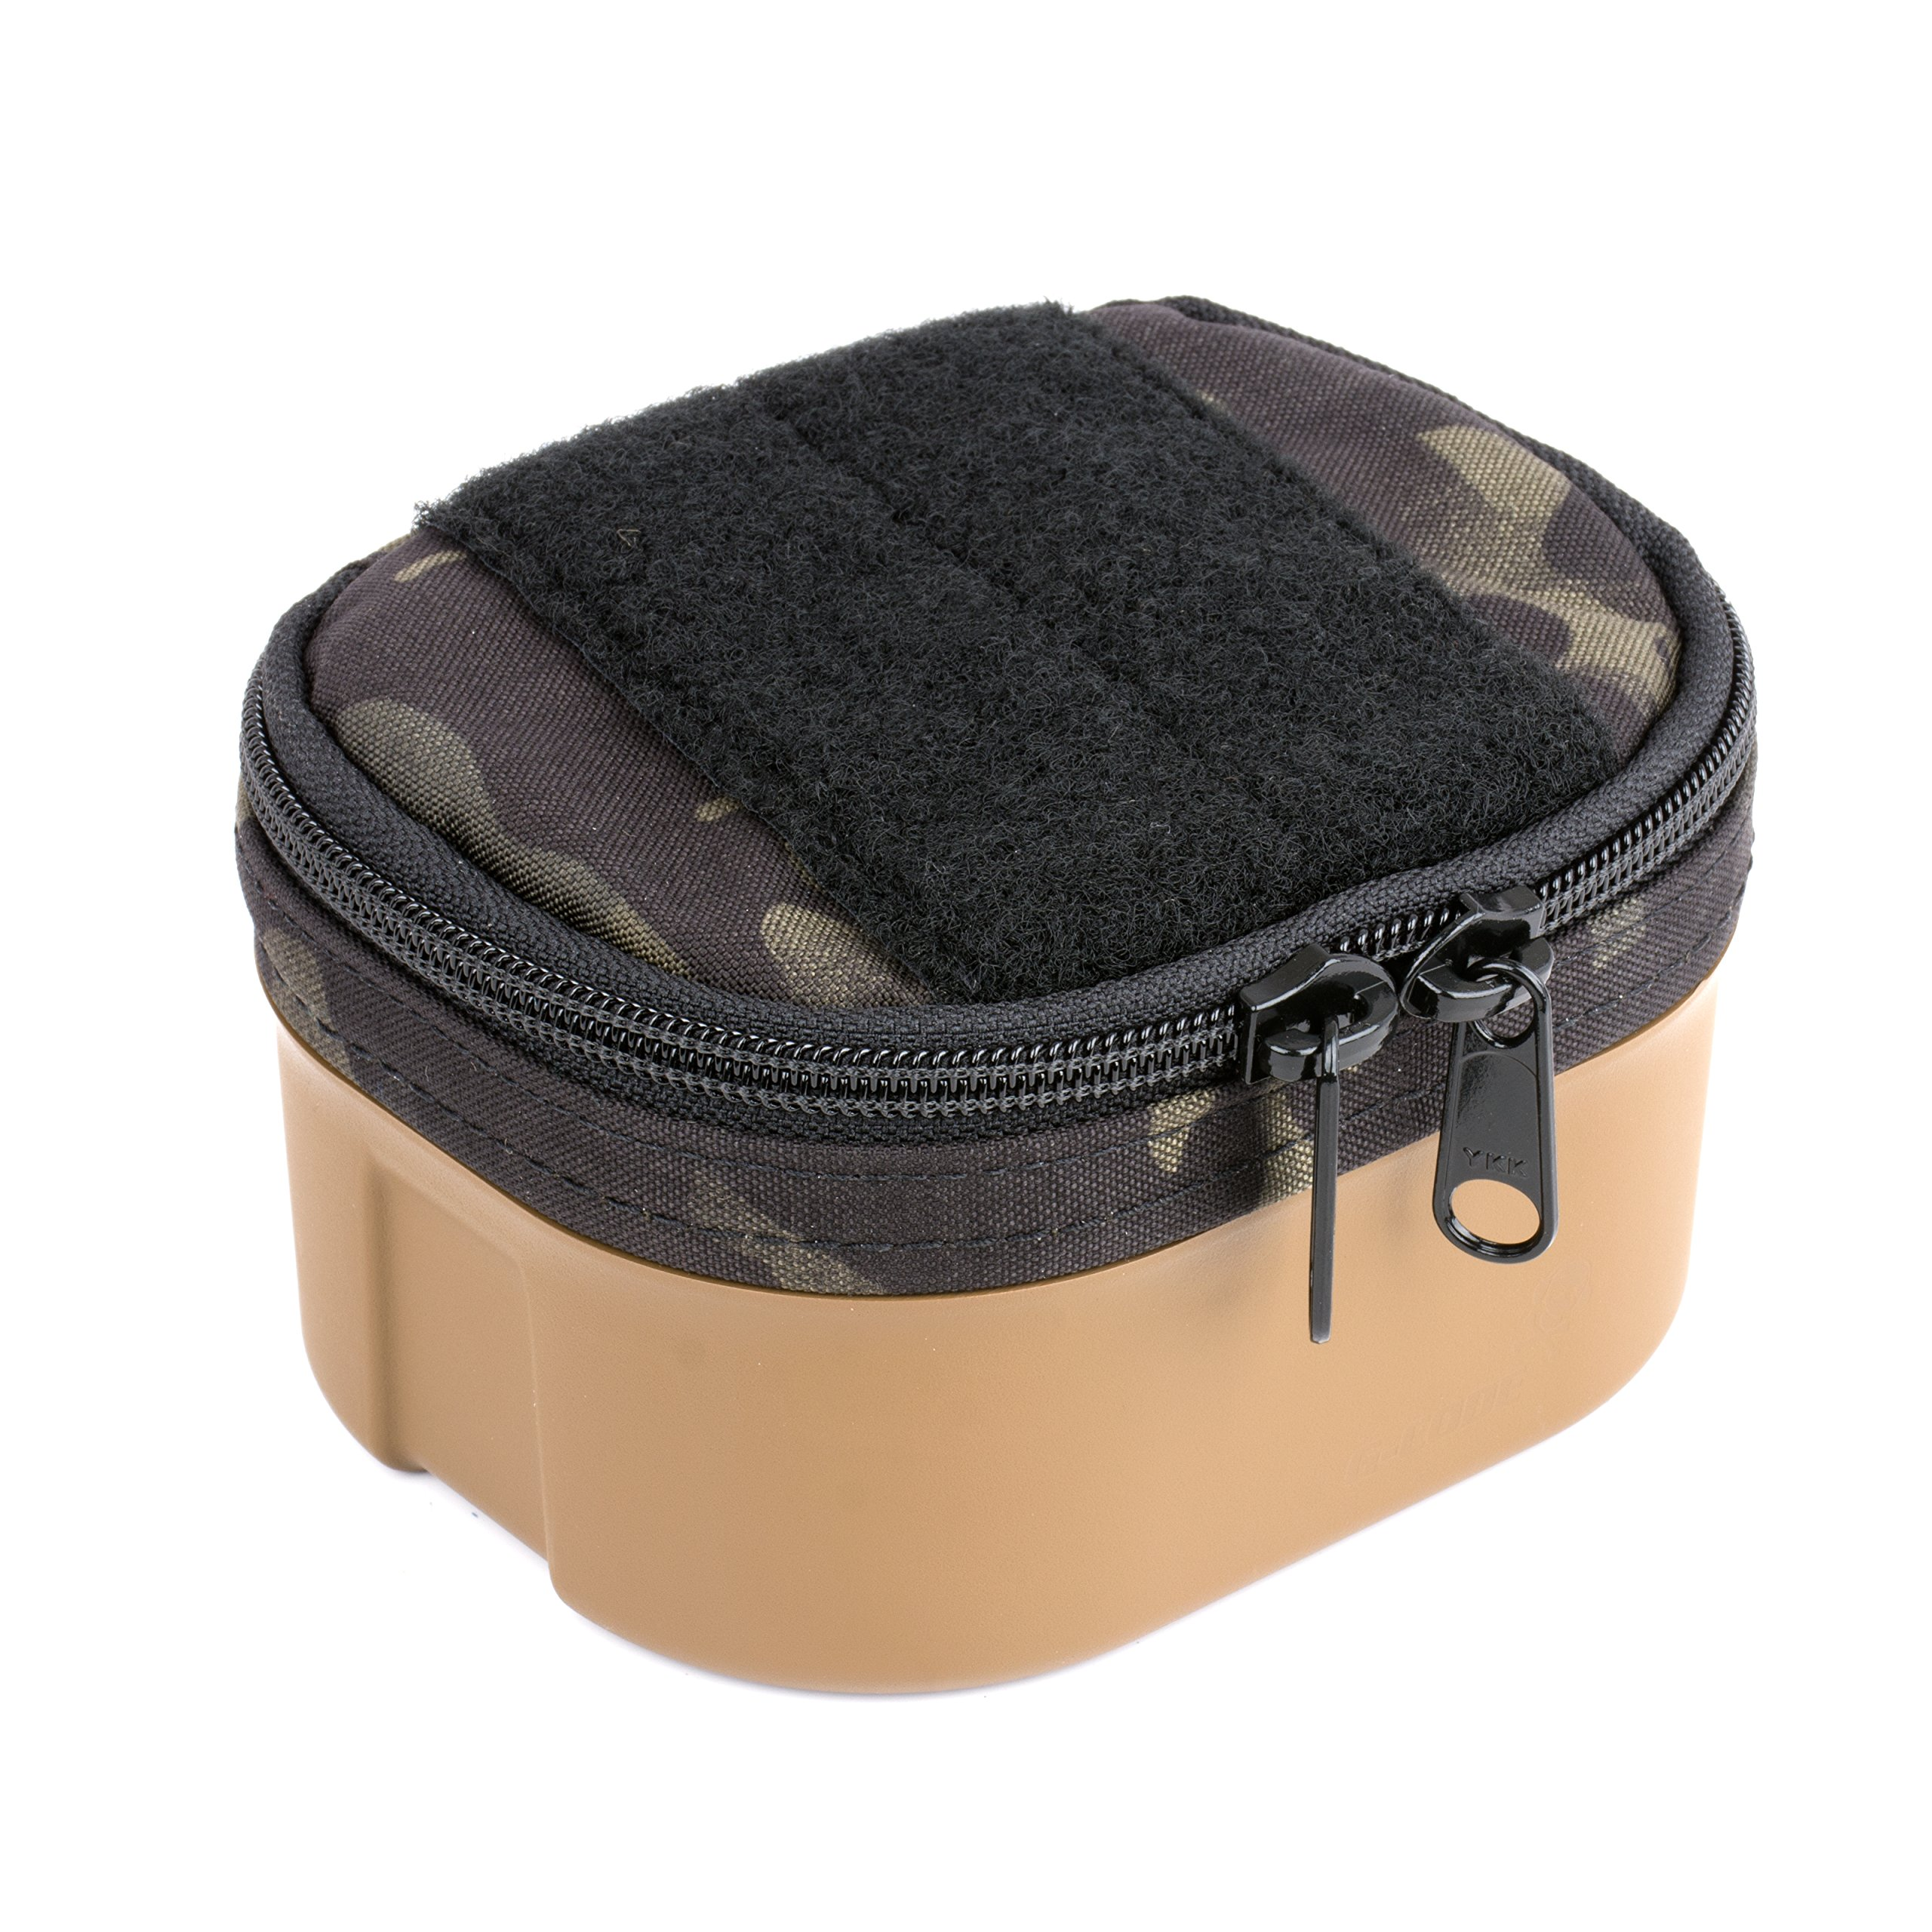 G-CODE Bang Box -Ammunition transport made simple! 100% Made in USA (black multicam on tan)